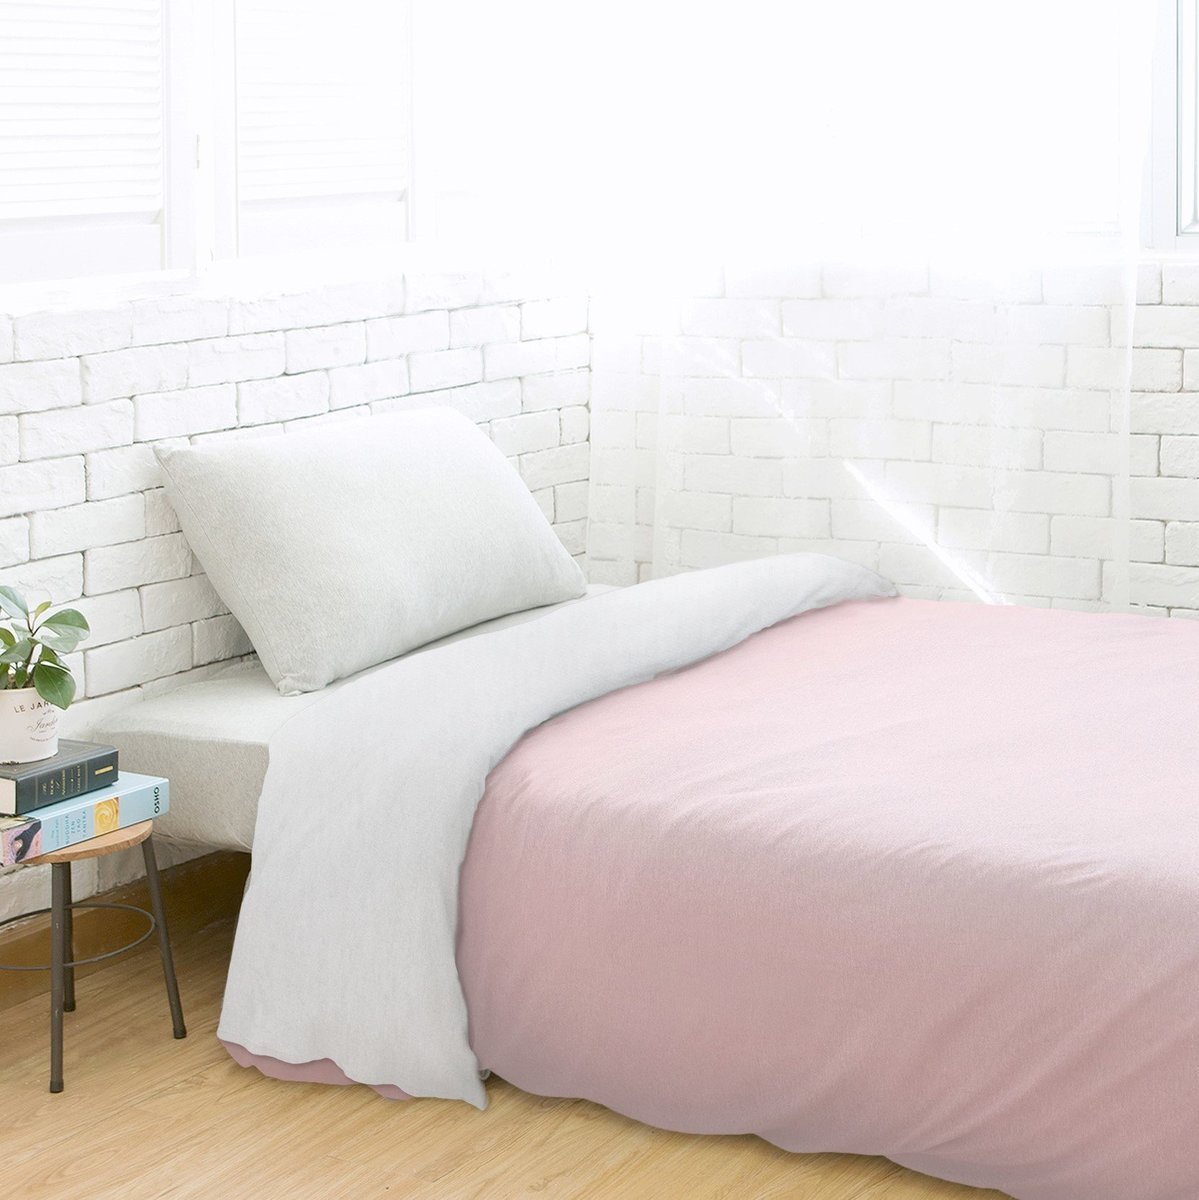 100% Cotton Knit Duvet Cover – Baby Pink/Grey